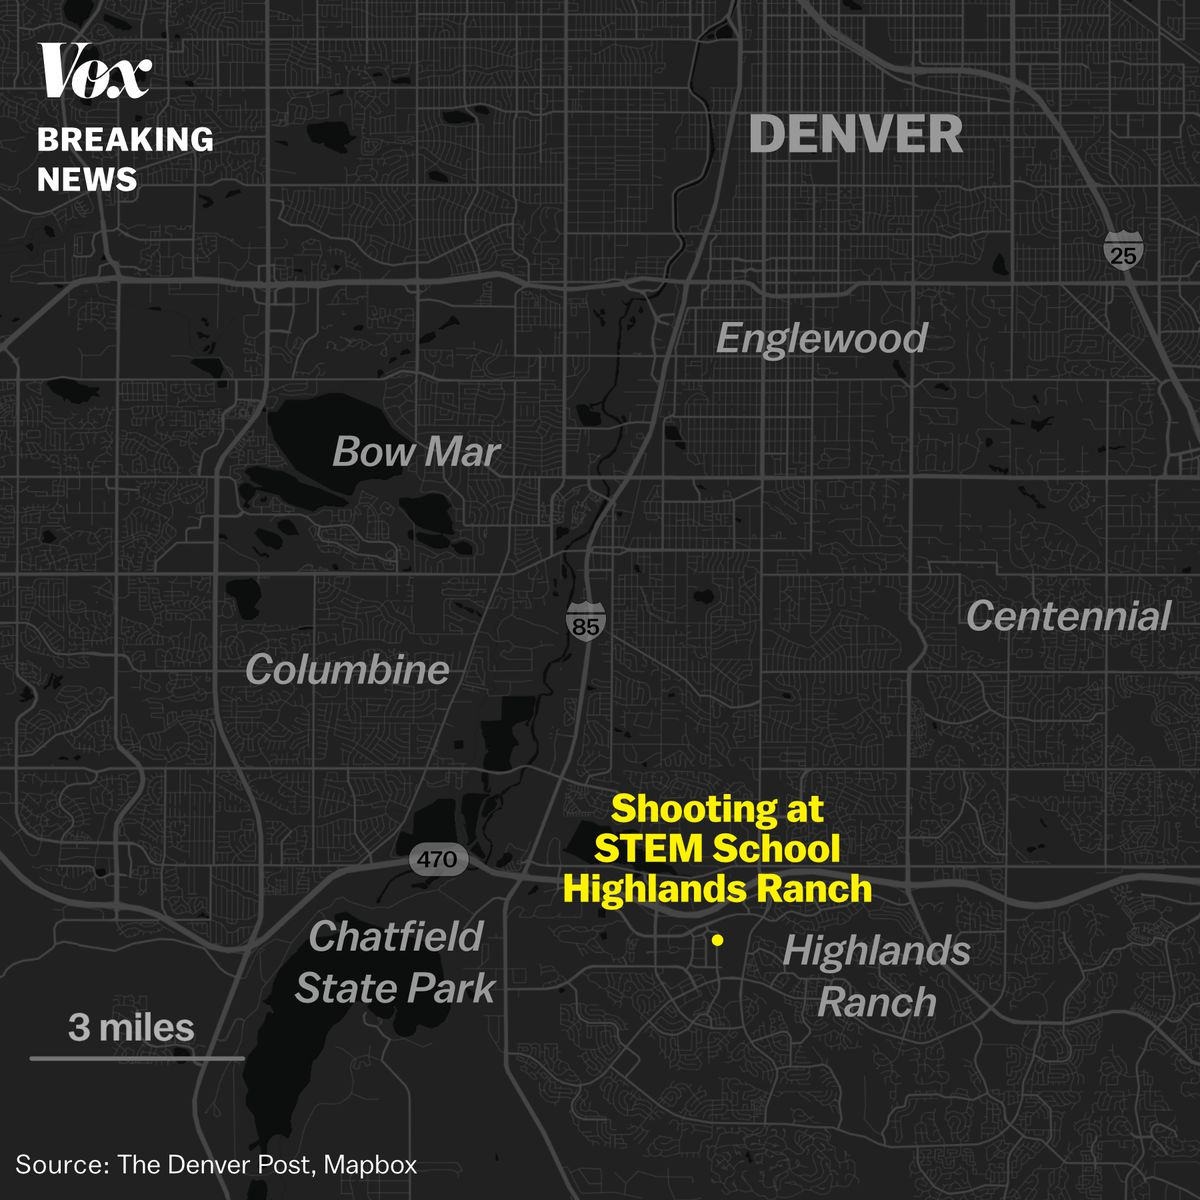 Stem School Highlands Ranch Shooting Suspect Played Guitar: Colorado Shooting At STEM School Highlands Ranch: What We